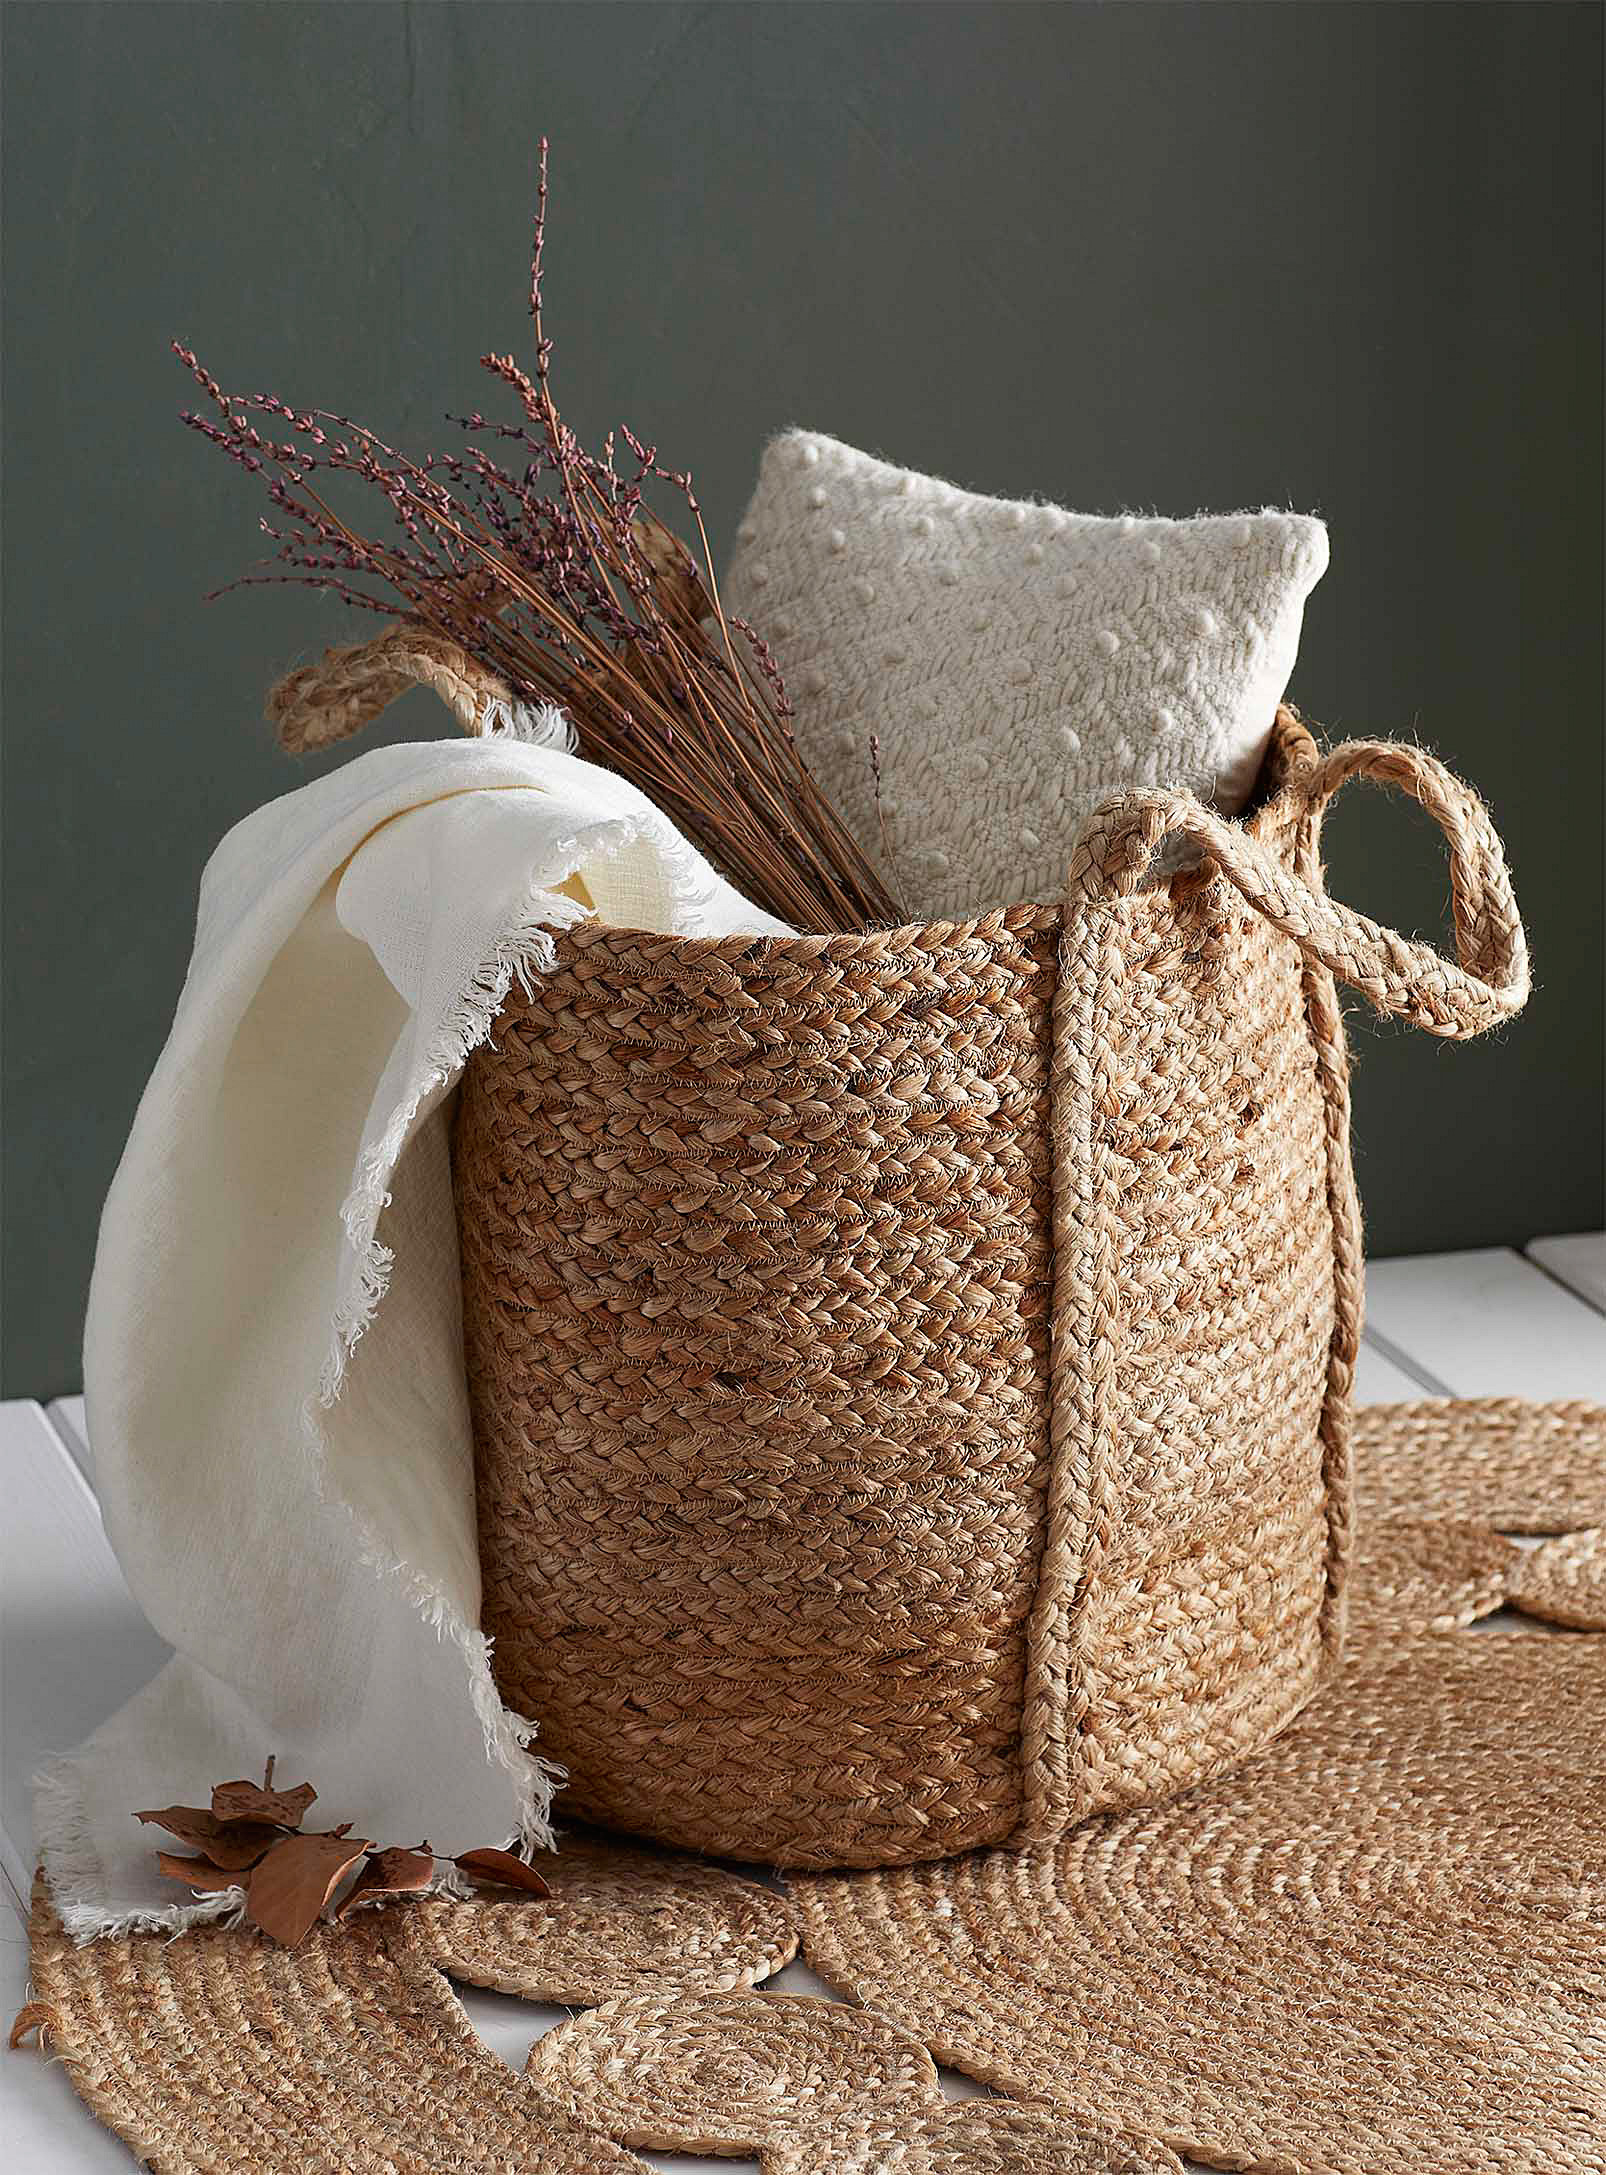 A woven basket with blankets and pillows inside